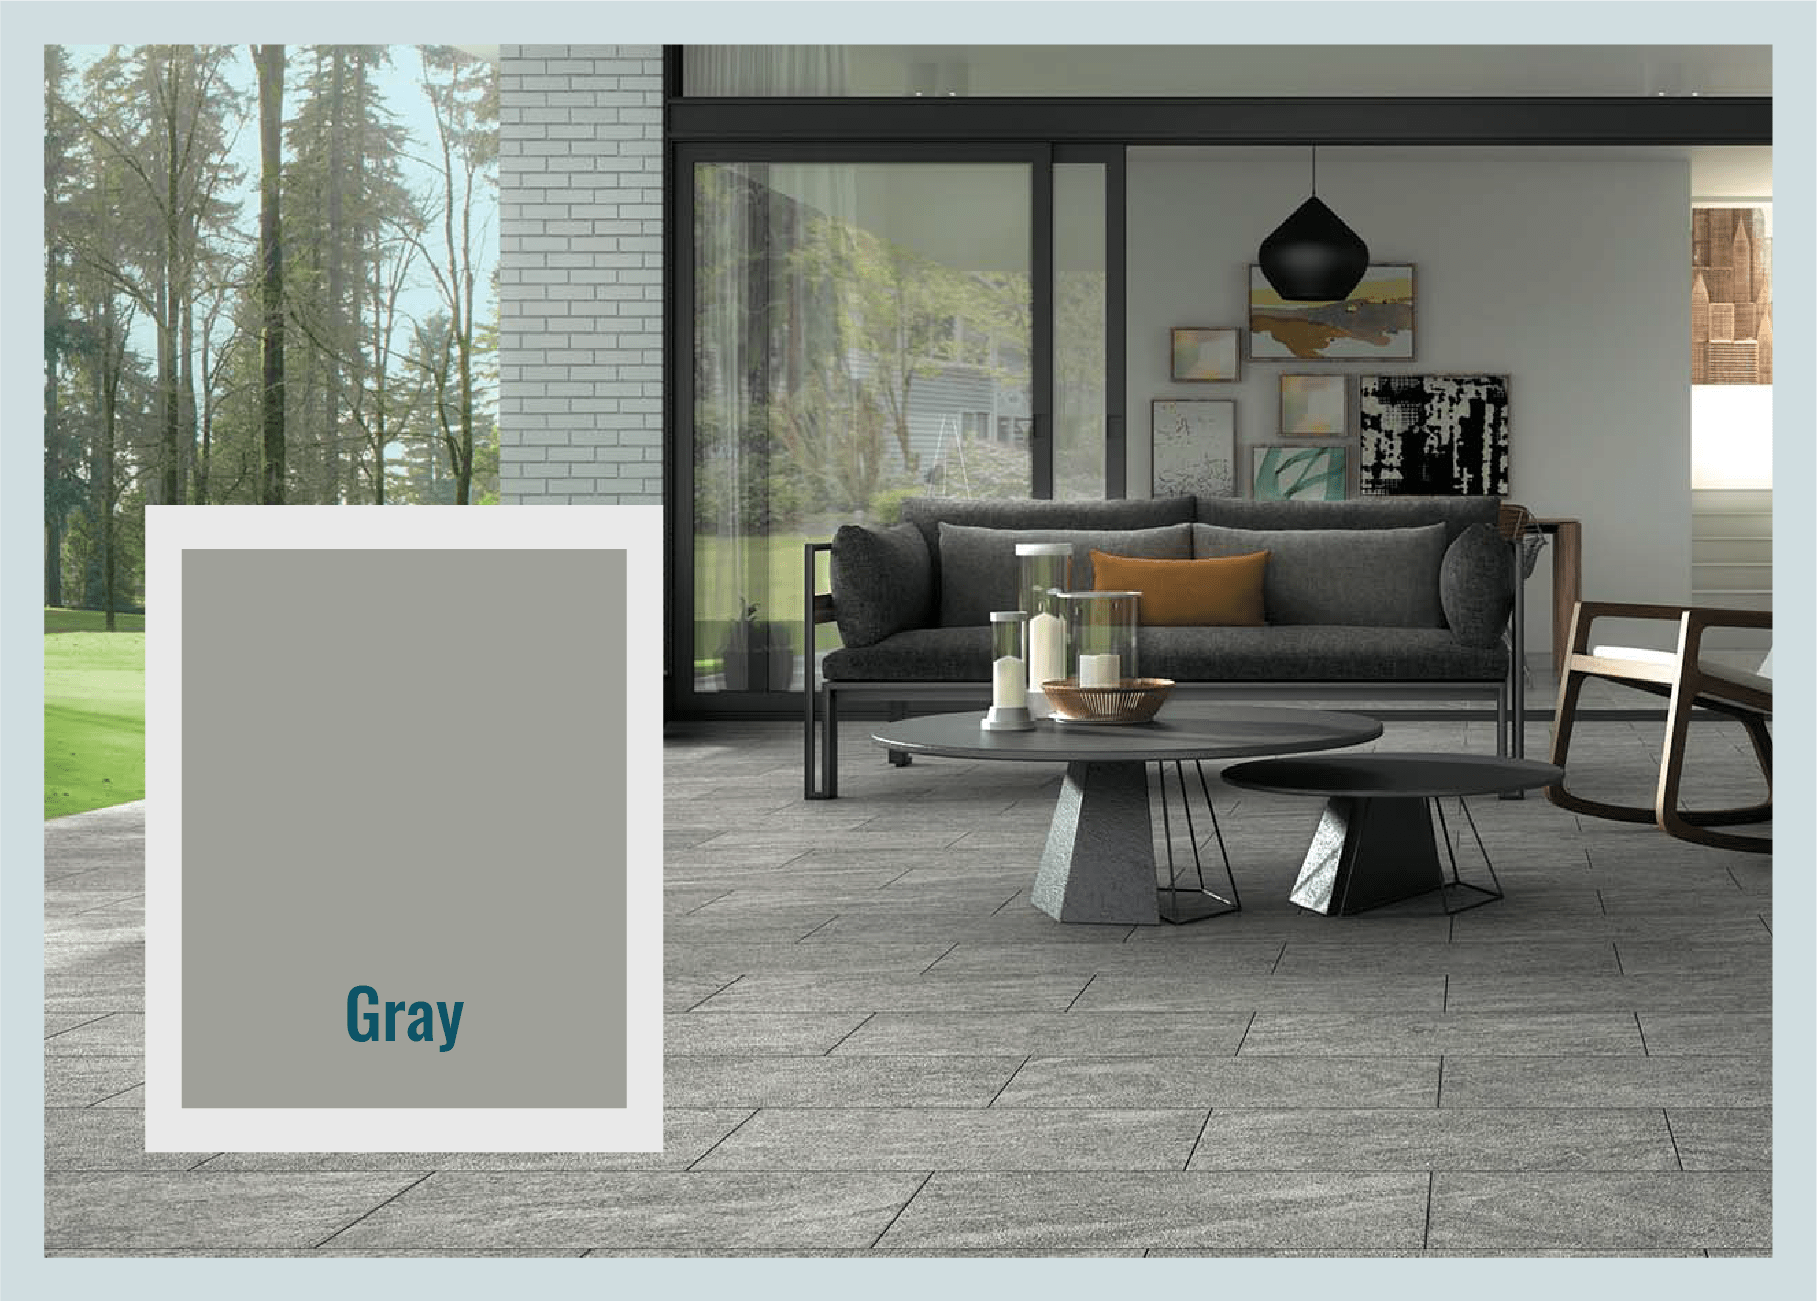 gray pavers